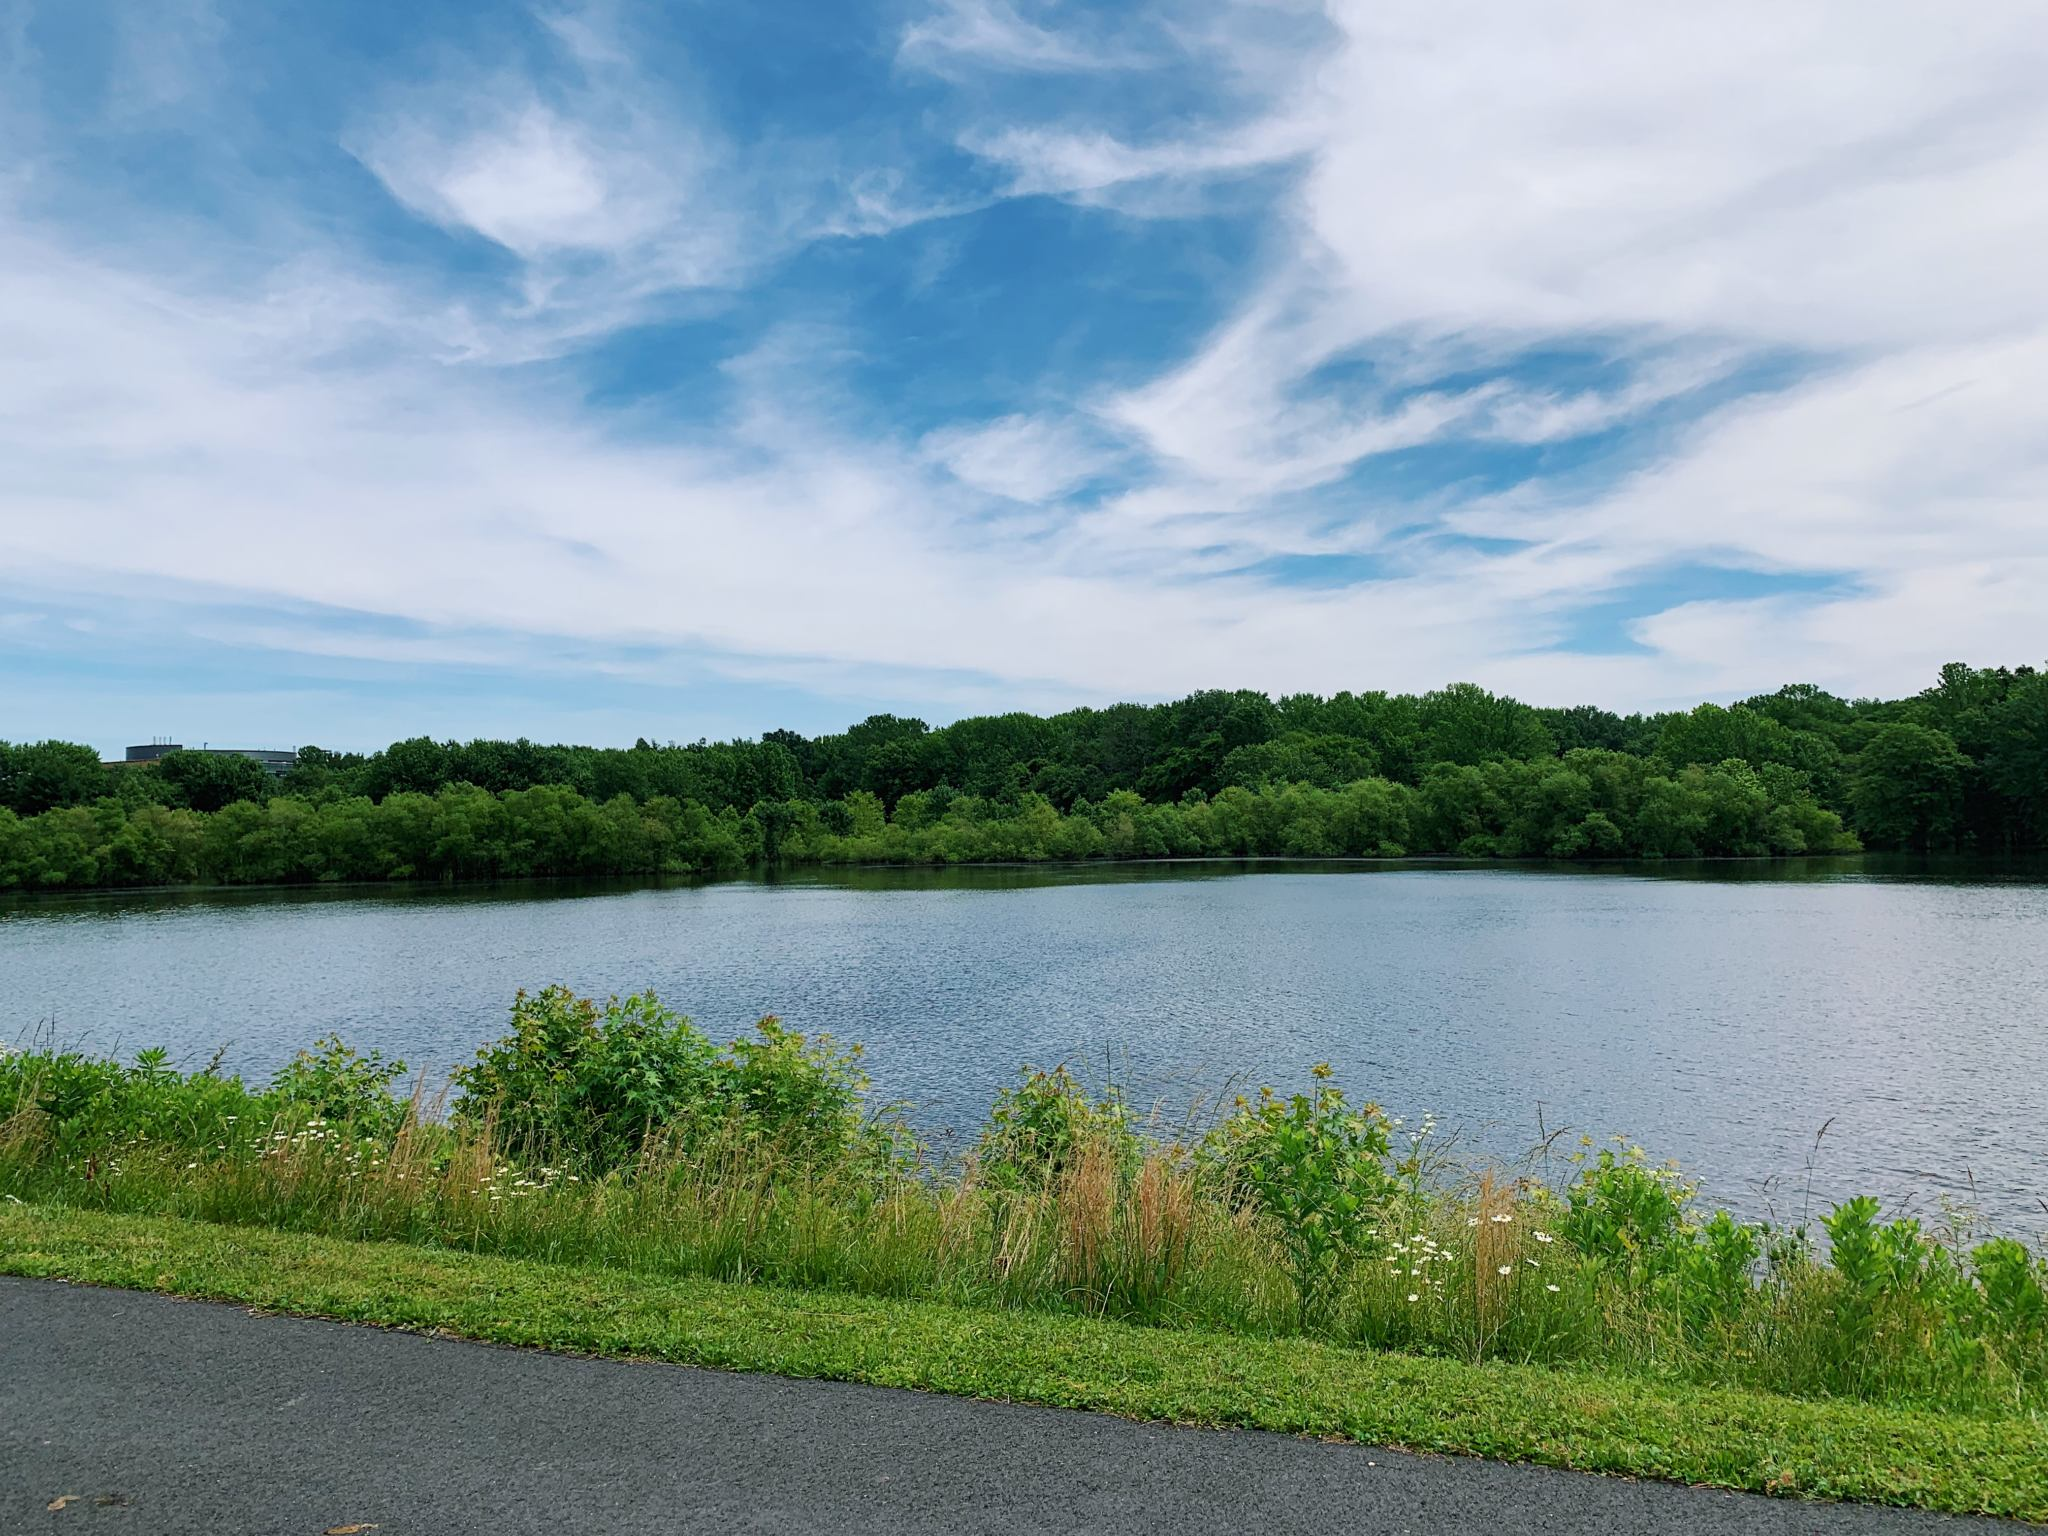 Ten Hiking Trails to Check Out in New Jersey - chicpeaJC